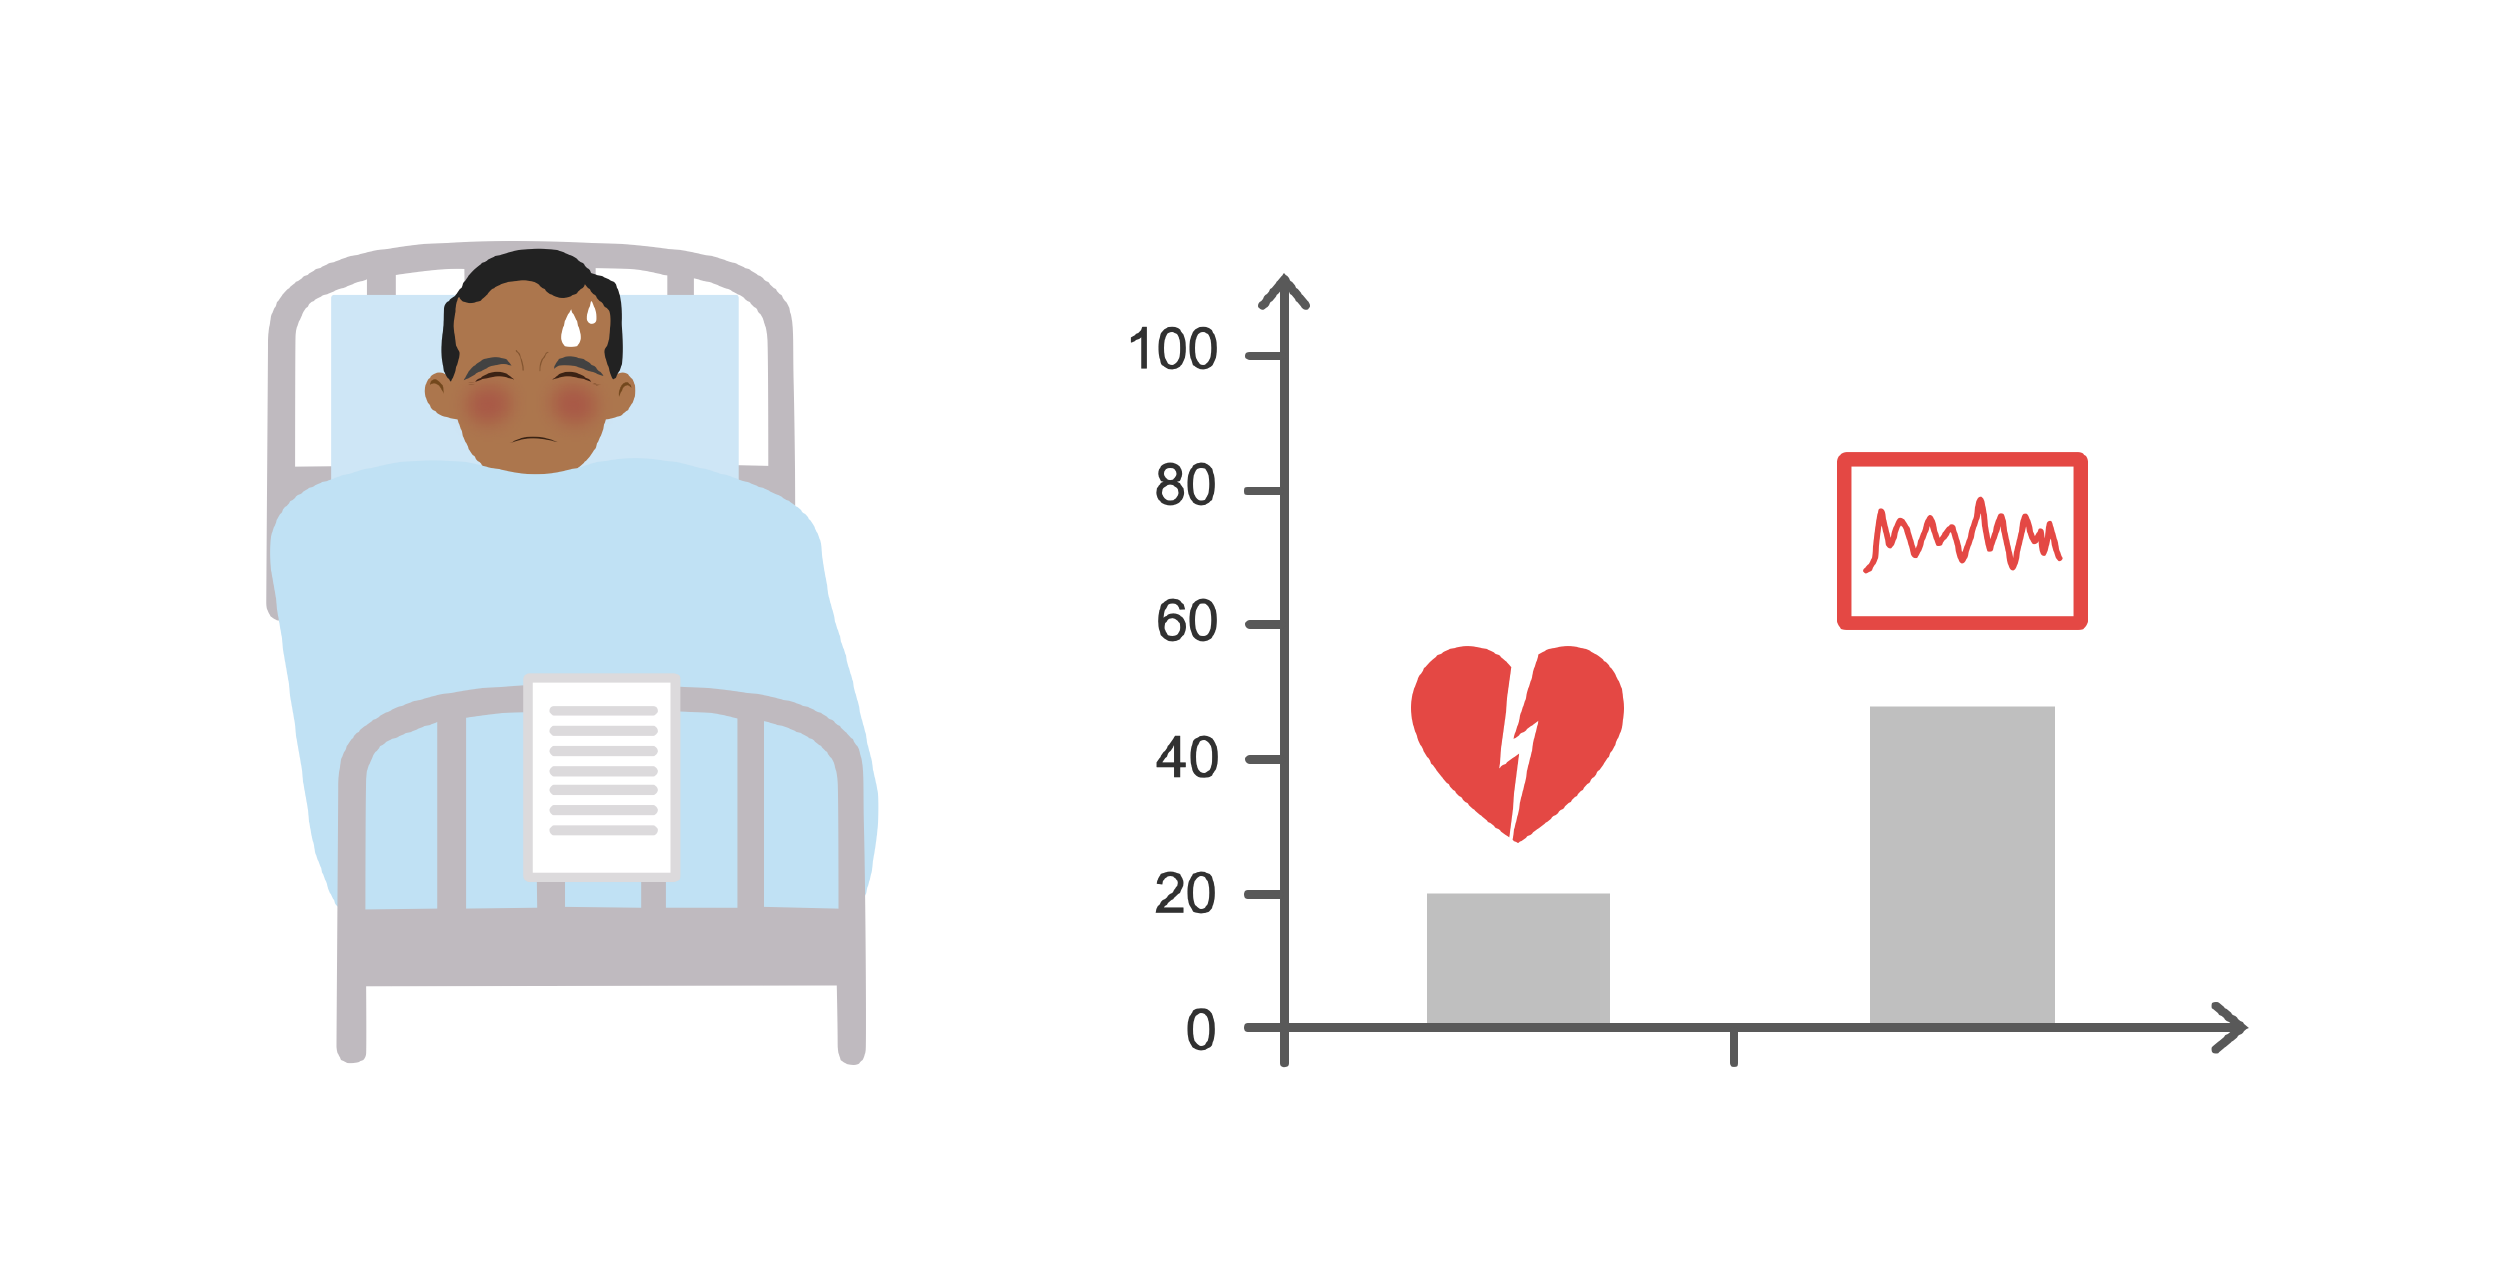 Patient in hospital bed and graph showing 20% heart damage and 44% arrythmia. Illustration.